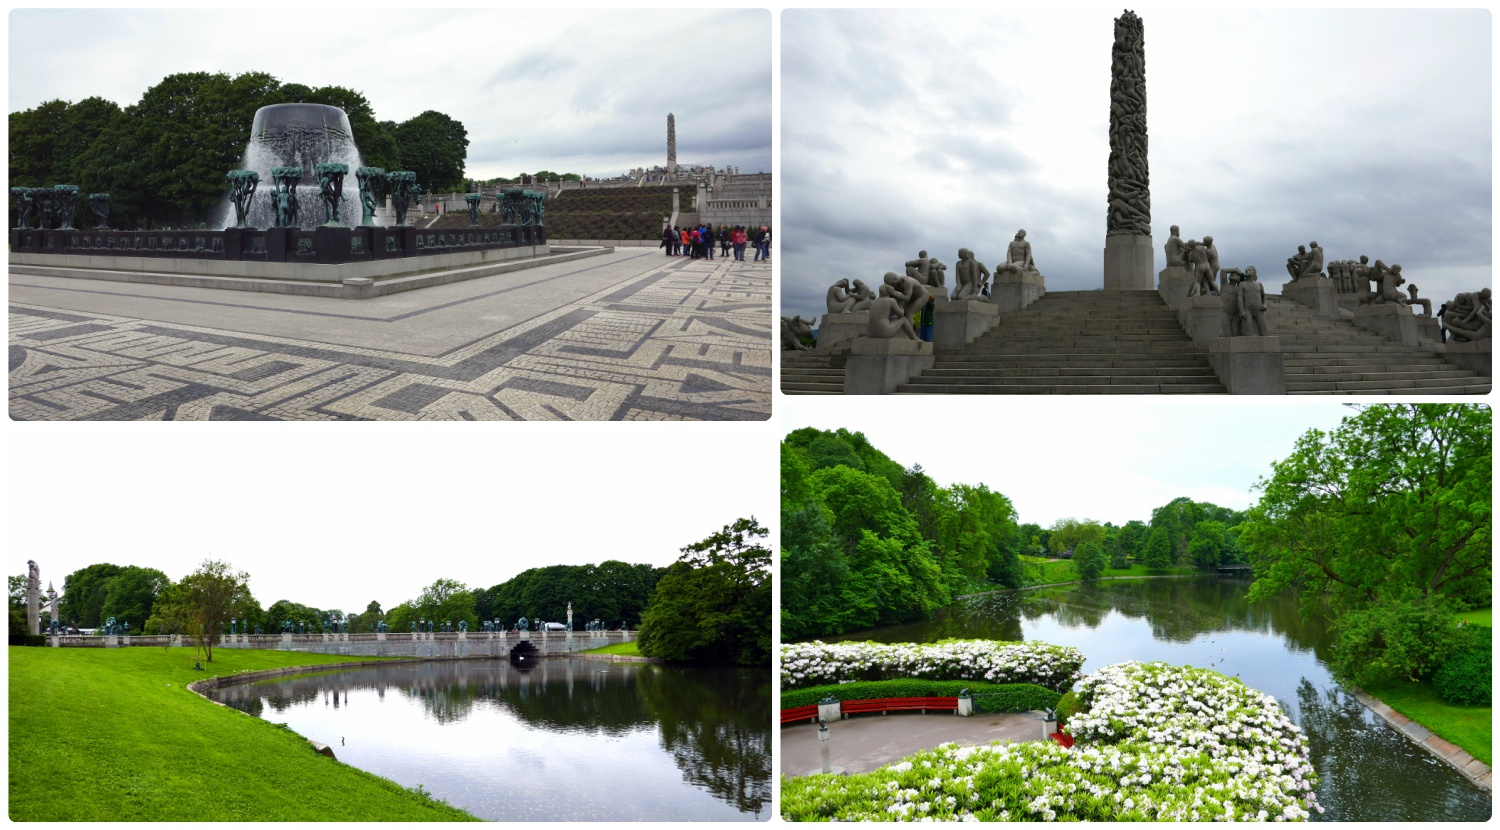 All images taken at The Vigeland Park. Clockwise (from the top): The stages of life fountain, the Monolith, looking towards the bridge that's lined with sculptures, taken from the bridge looking out over the pond.